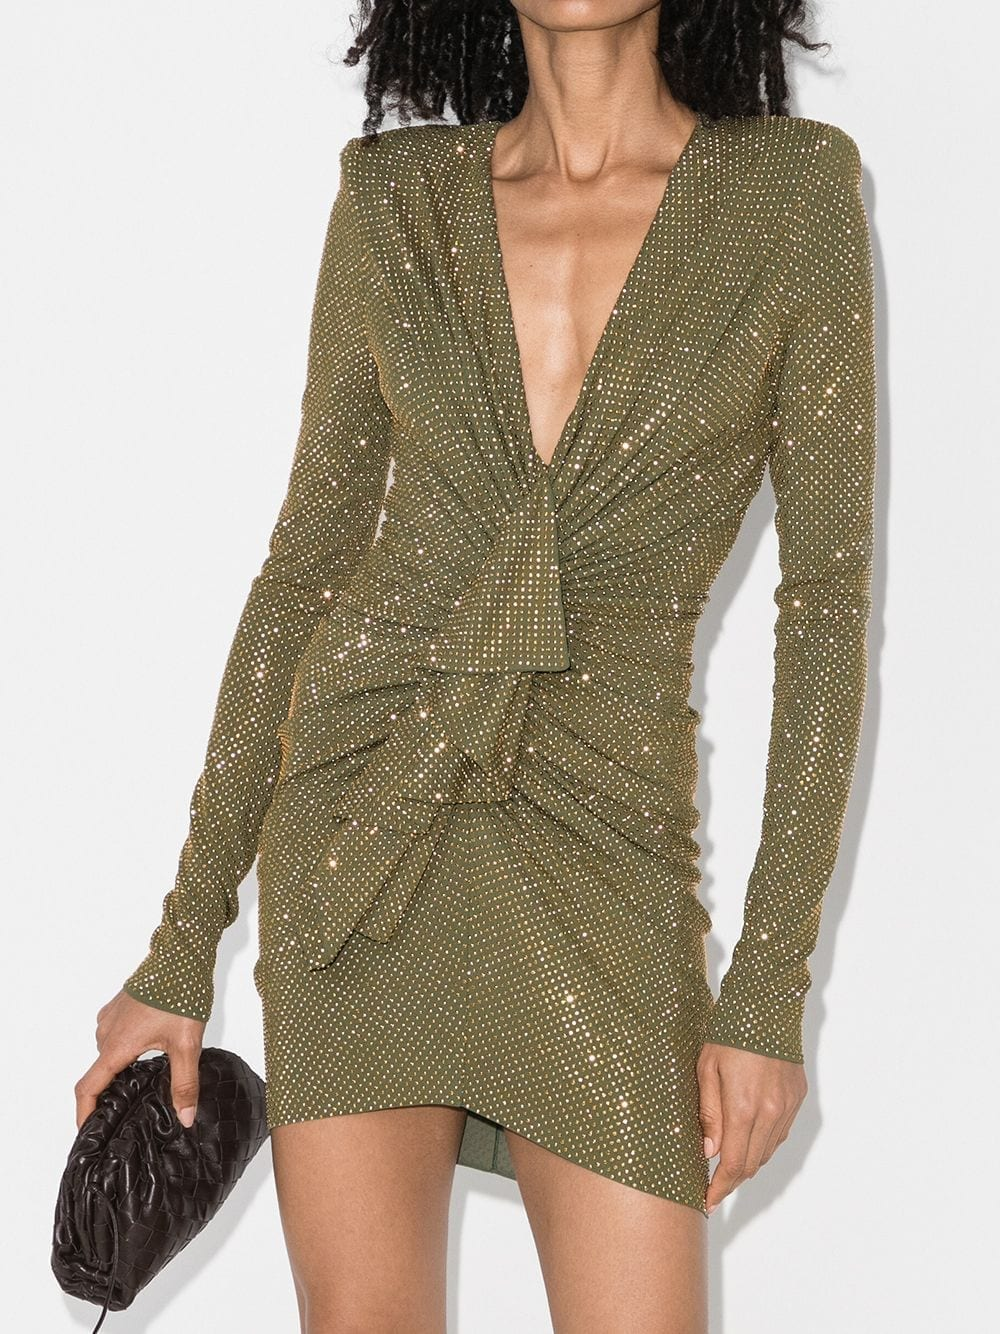 ALEXANDRE VAUTHIER Deep V-neck Gemstone Mini Dress